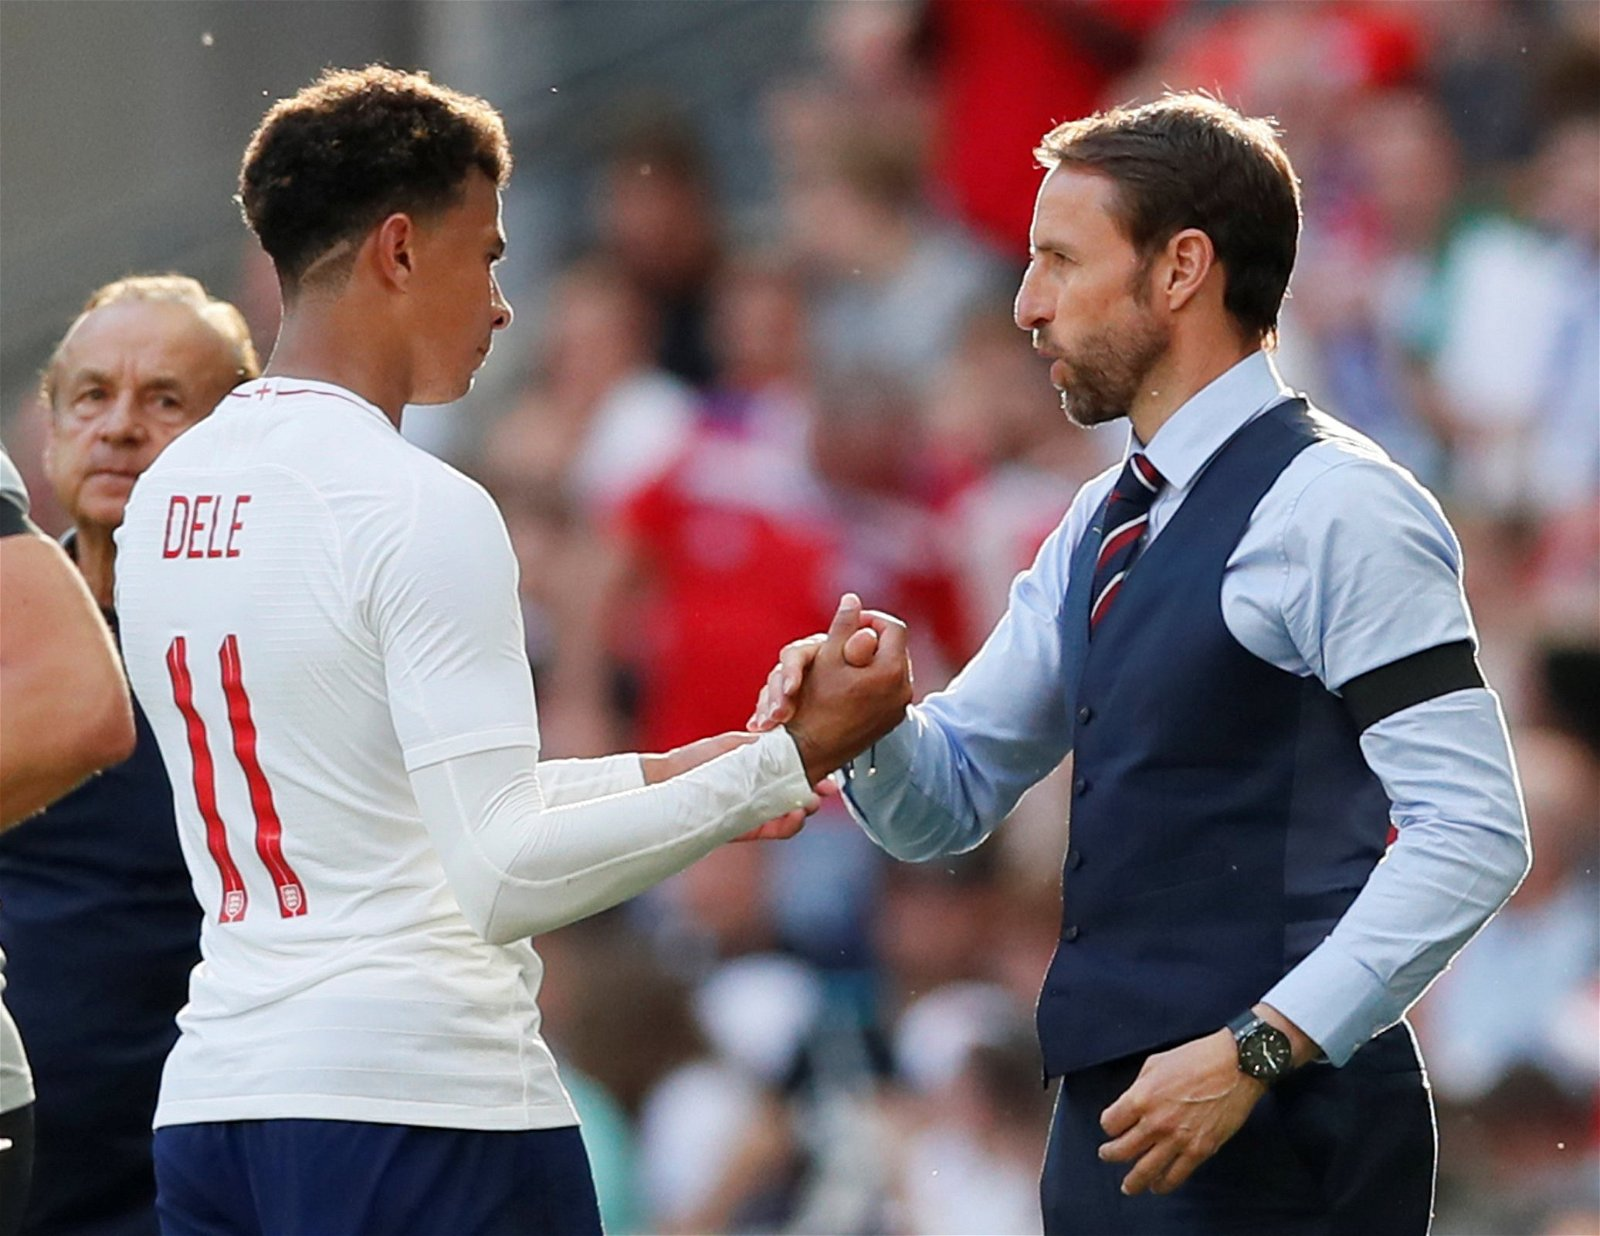 Dele Alli shakes hands with Gareth Southgate